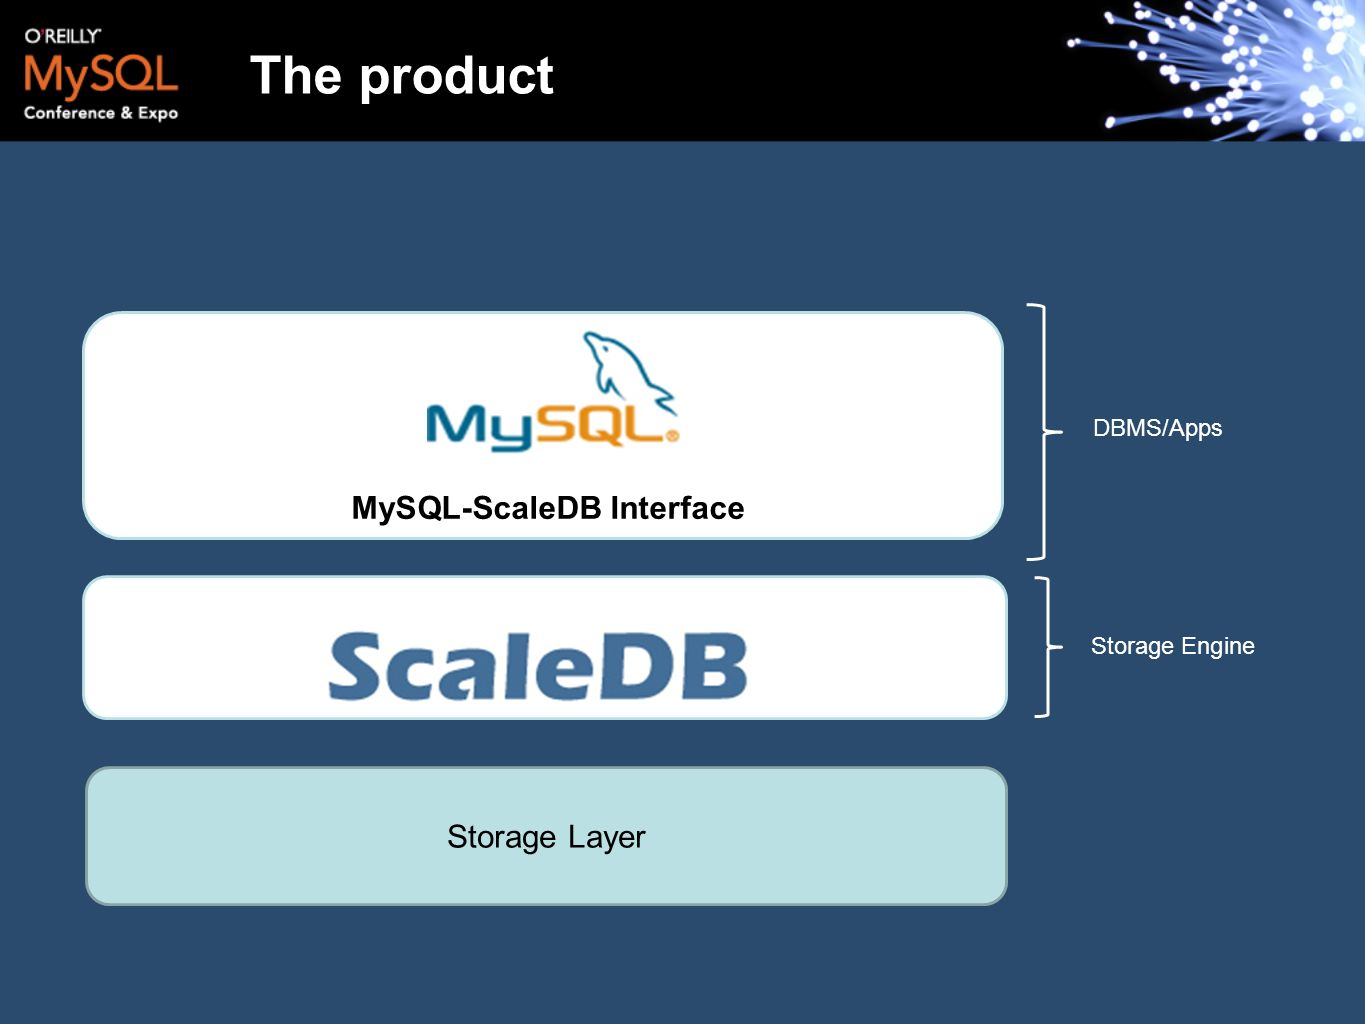 MySQL-ScaleDB Interface